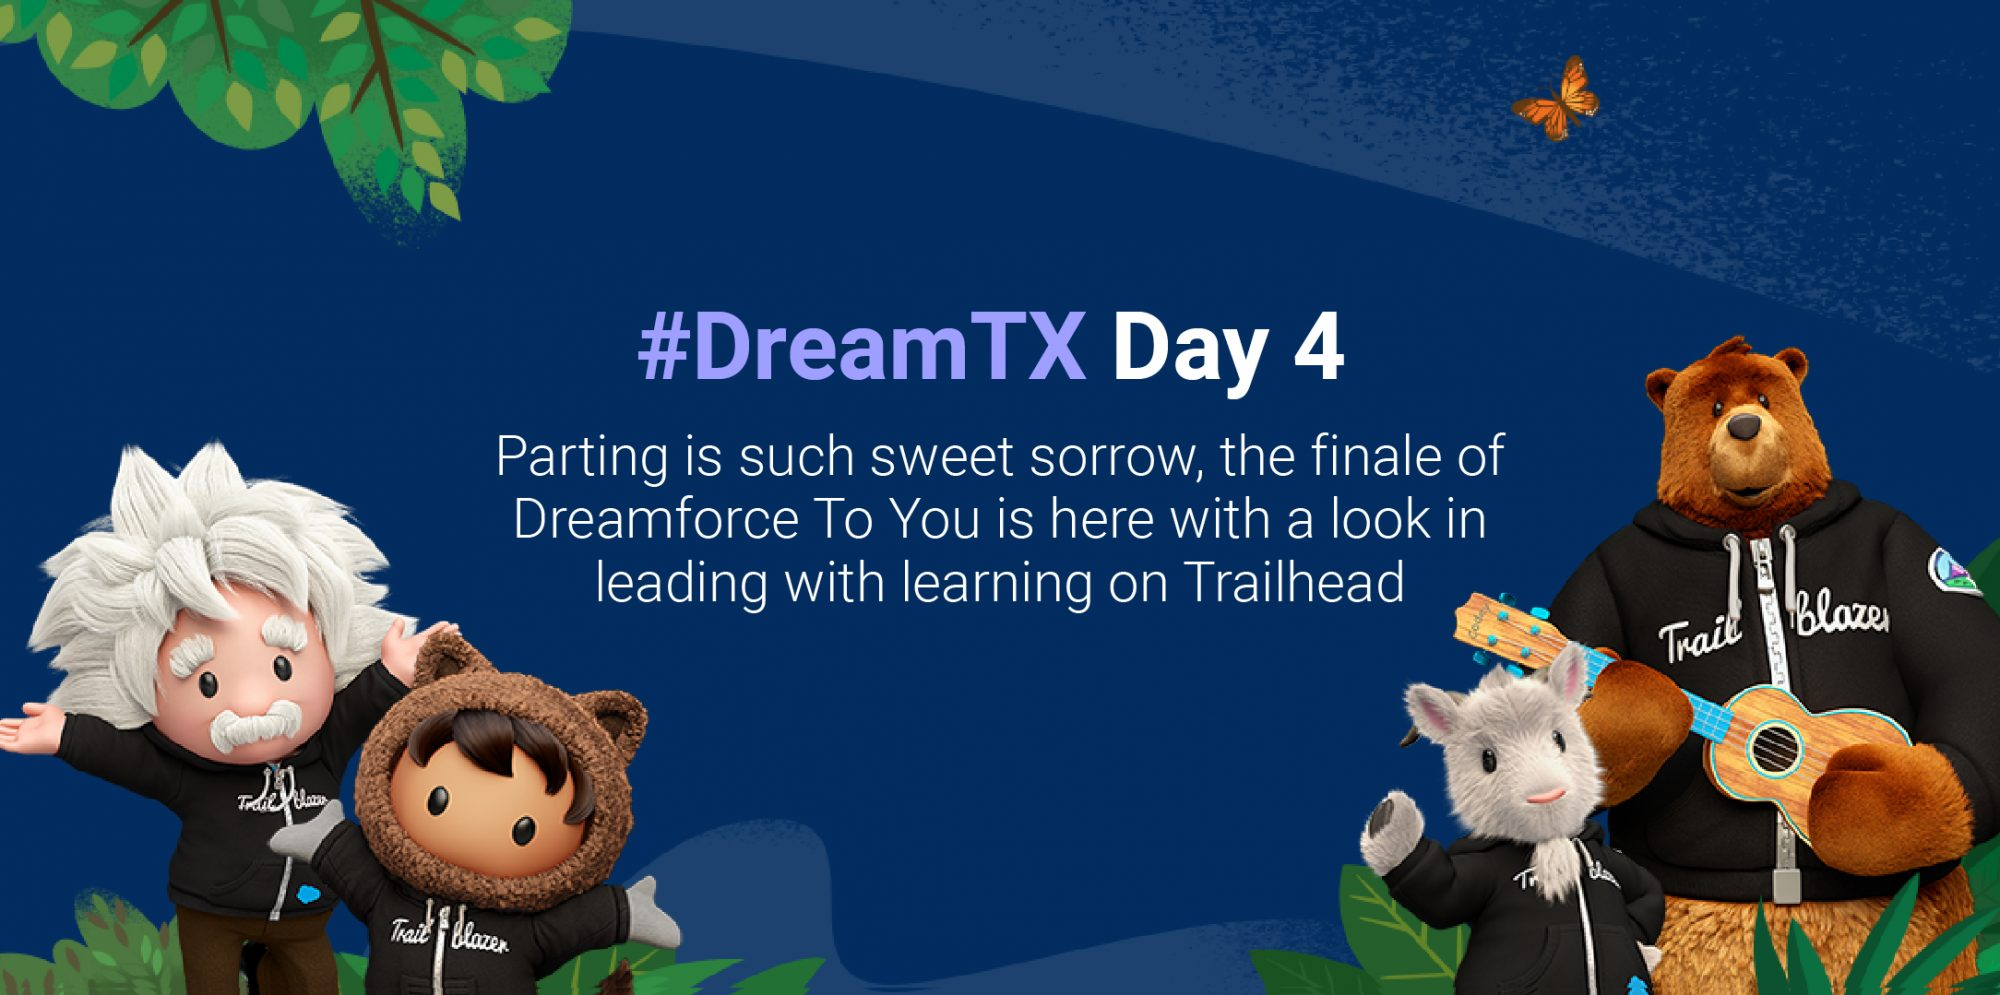 #DreamTX Day 4: The finale of Dreamforce To You is here!